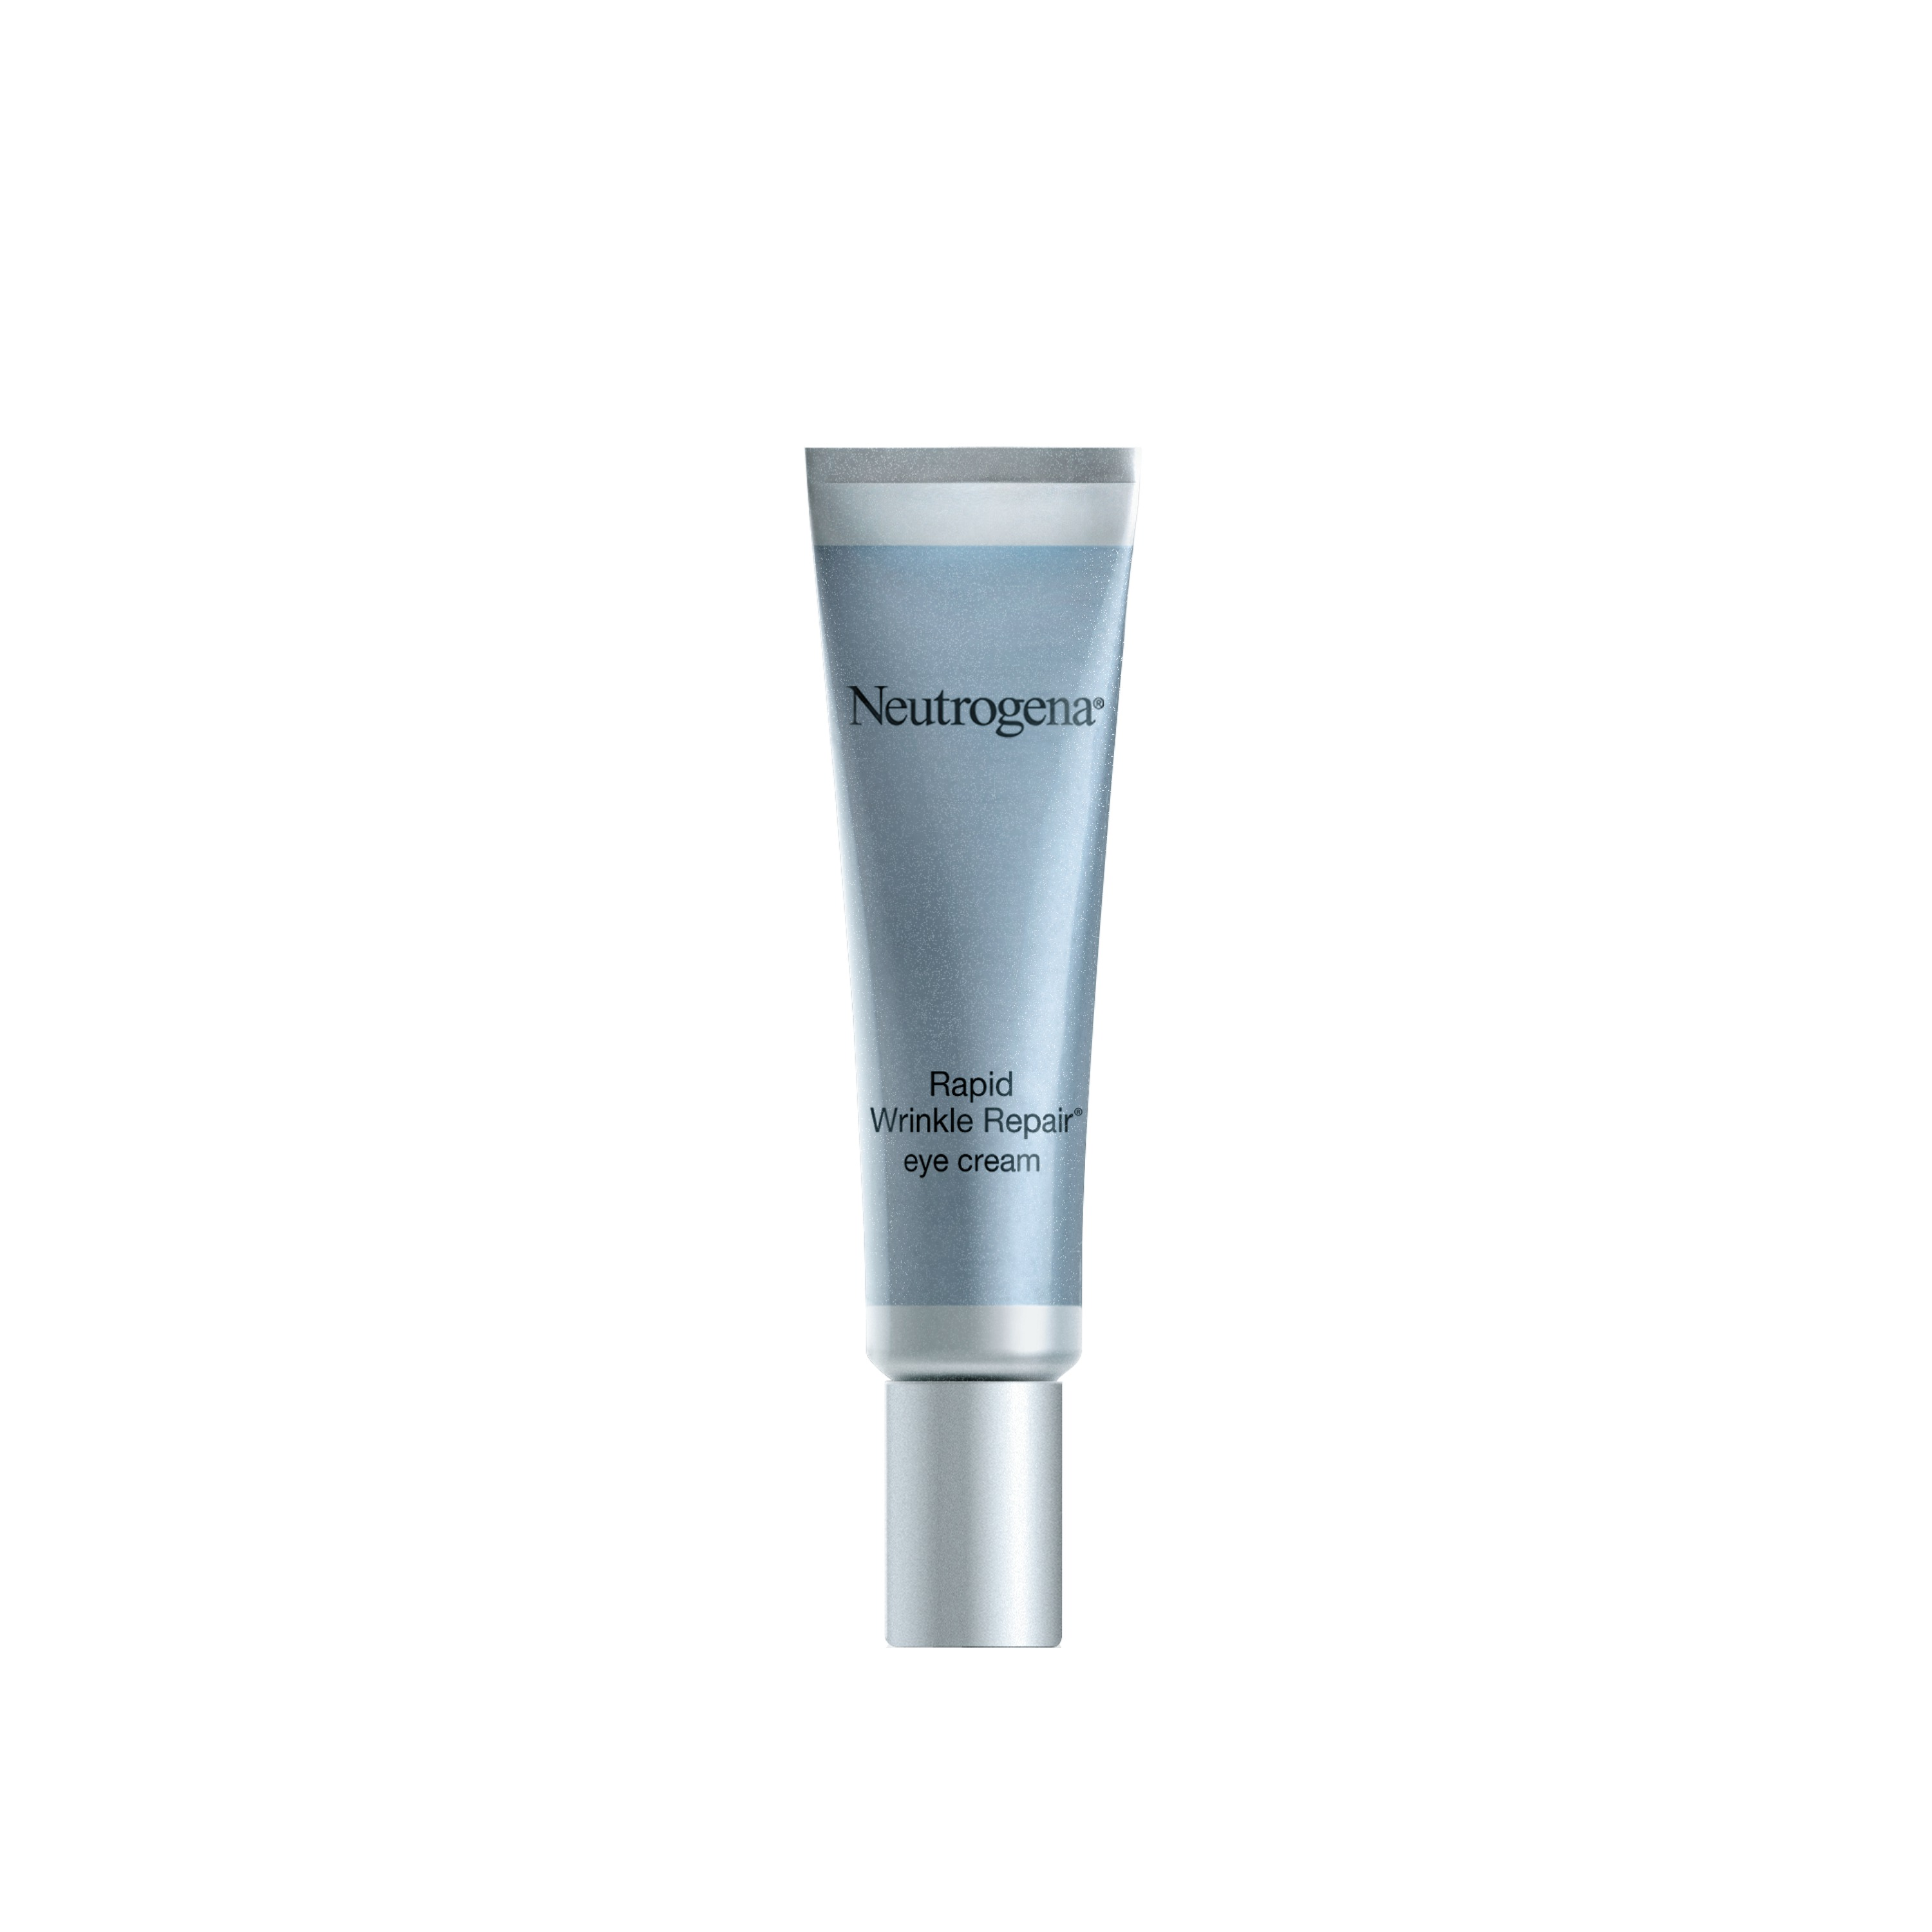 Neutrogena Rapid Wrinkle Repair Eye Cream with Retinal SA, 0.5 fl. oz